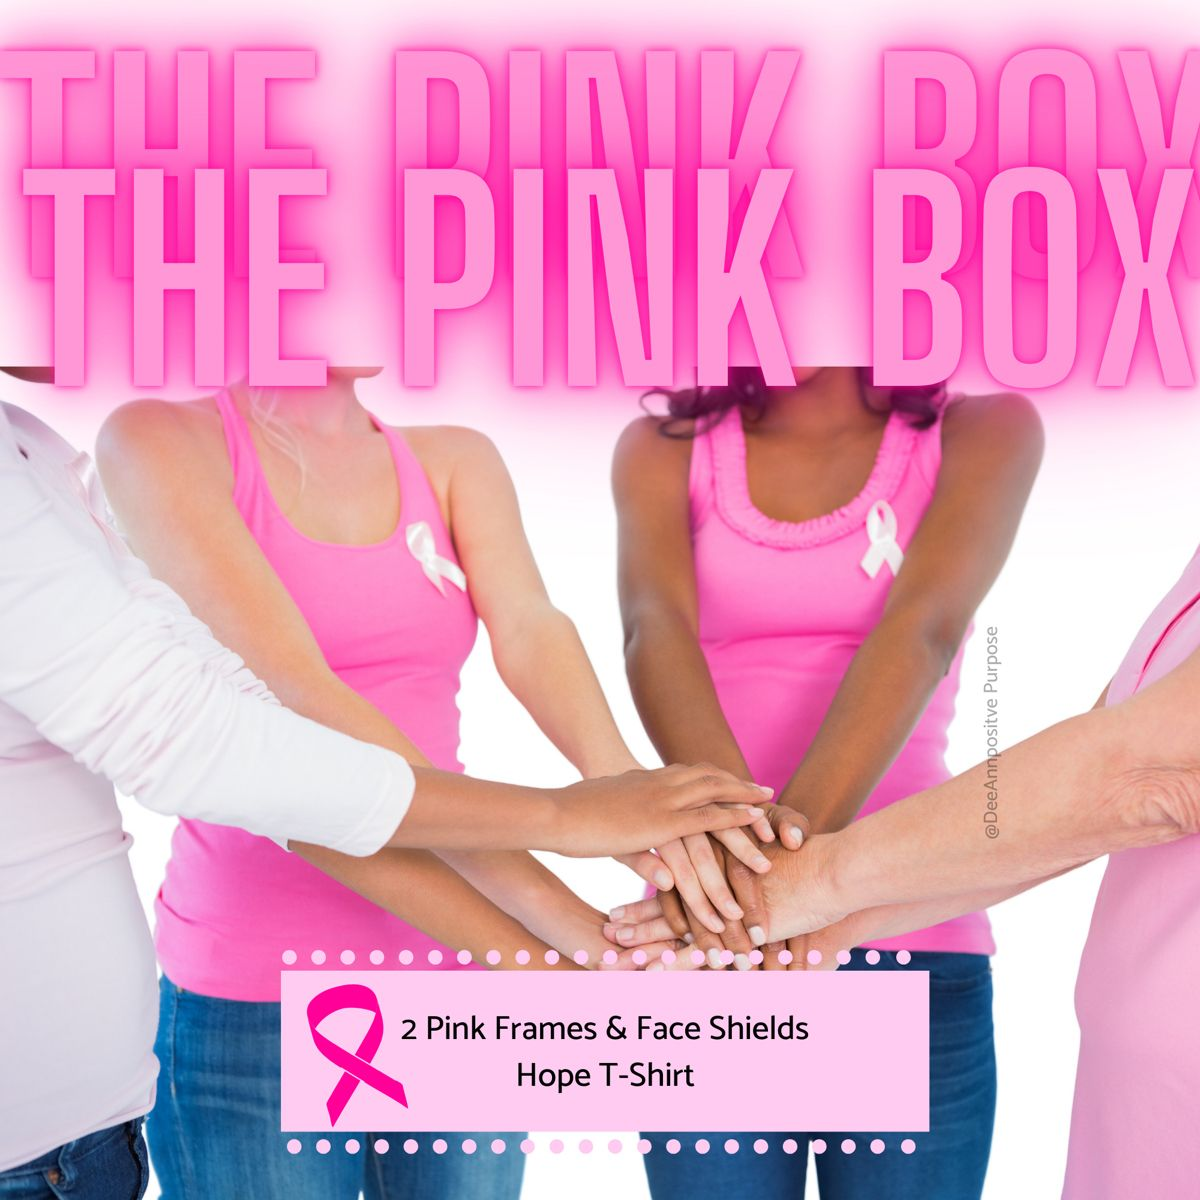 Inside the Think Pink Box, you will get t-shirt and 2 shields... TO LEARN MORE HEAD TO THE LINK BELOW #breastcancerawareness #thinkpink #october #cancerawareness